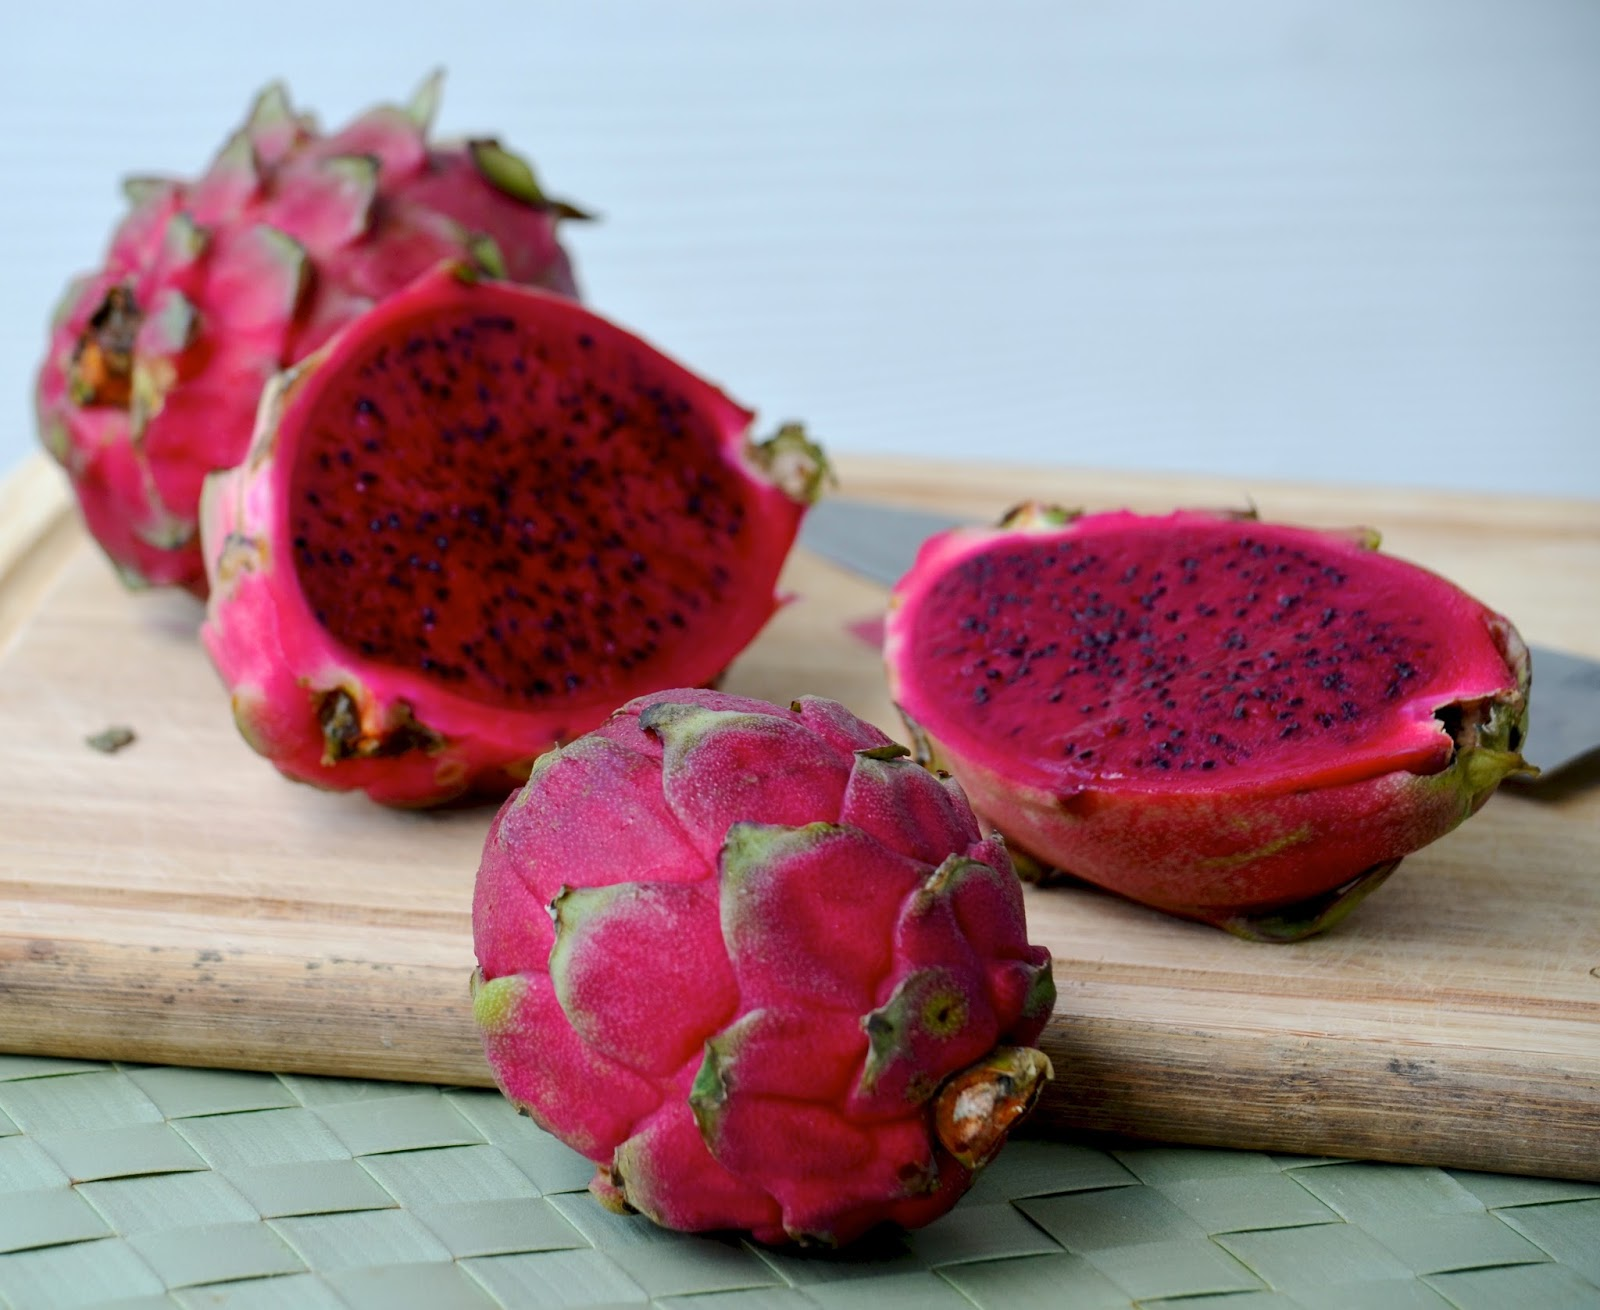 I've Seen The White Fleshed Kind, But This Magenta Color Is Just  Eyepopping More Nerdy Fun Facts: Eating Redfleshed Dragon Fruit